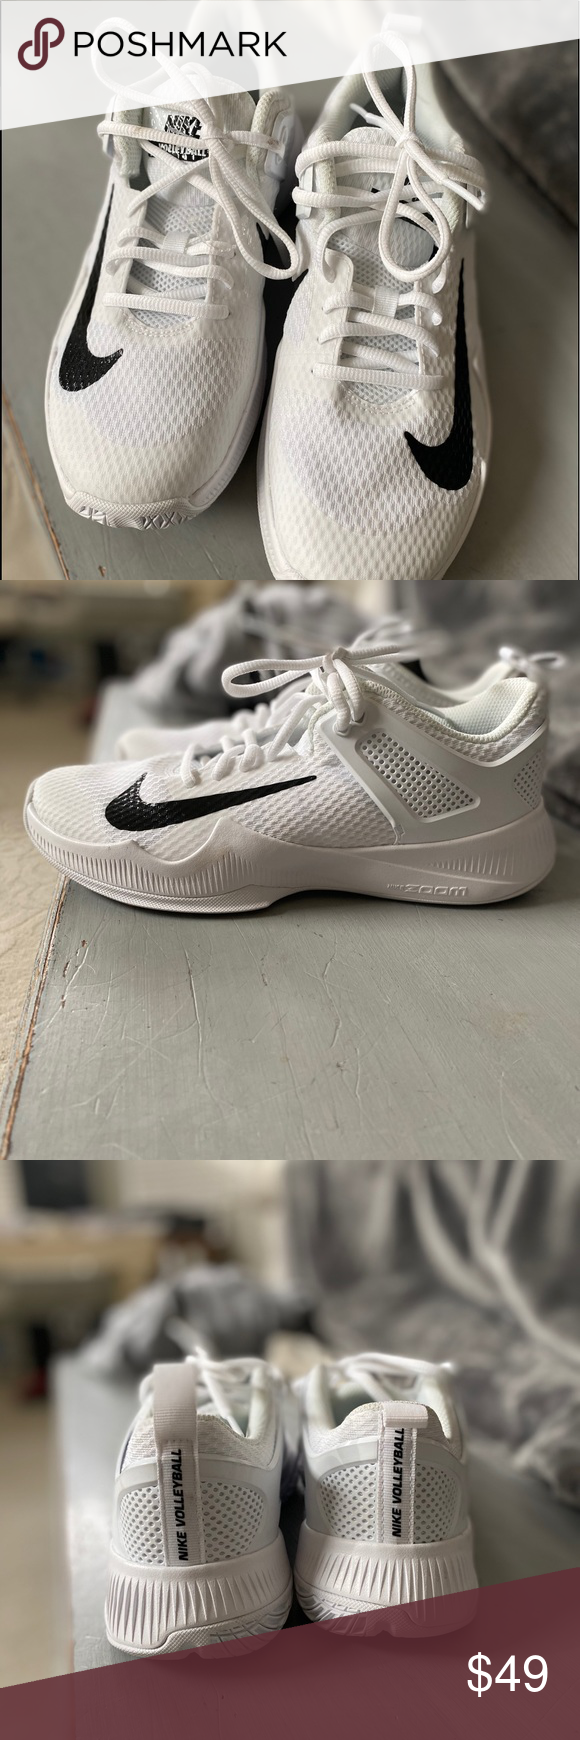 Nike Women S Volleyball Shoes 7 In 2020 Volleyball Shoes Nike Volleyball Shoes Nike